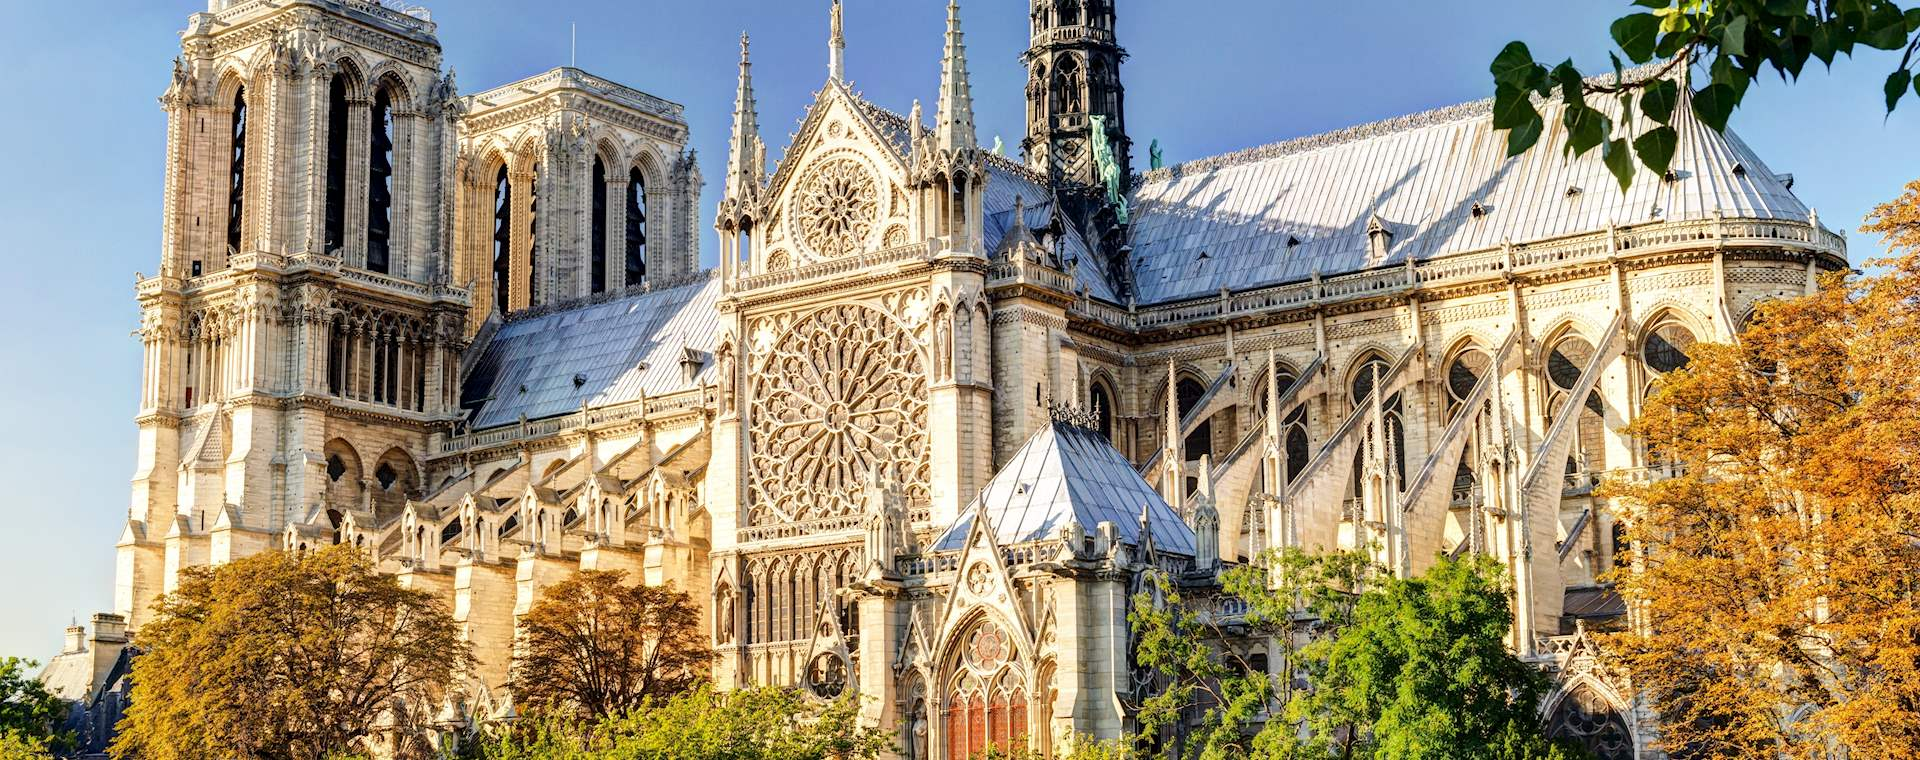 Best of Paris: Louvre Museum & Notre Dame with Towers Combo Saver Tour